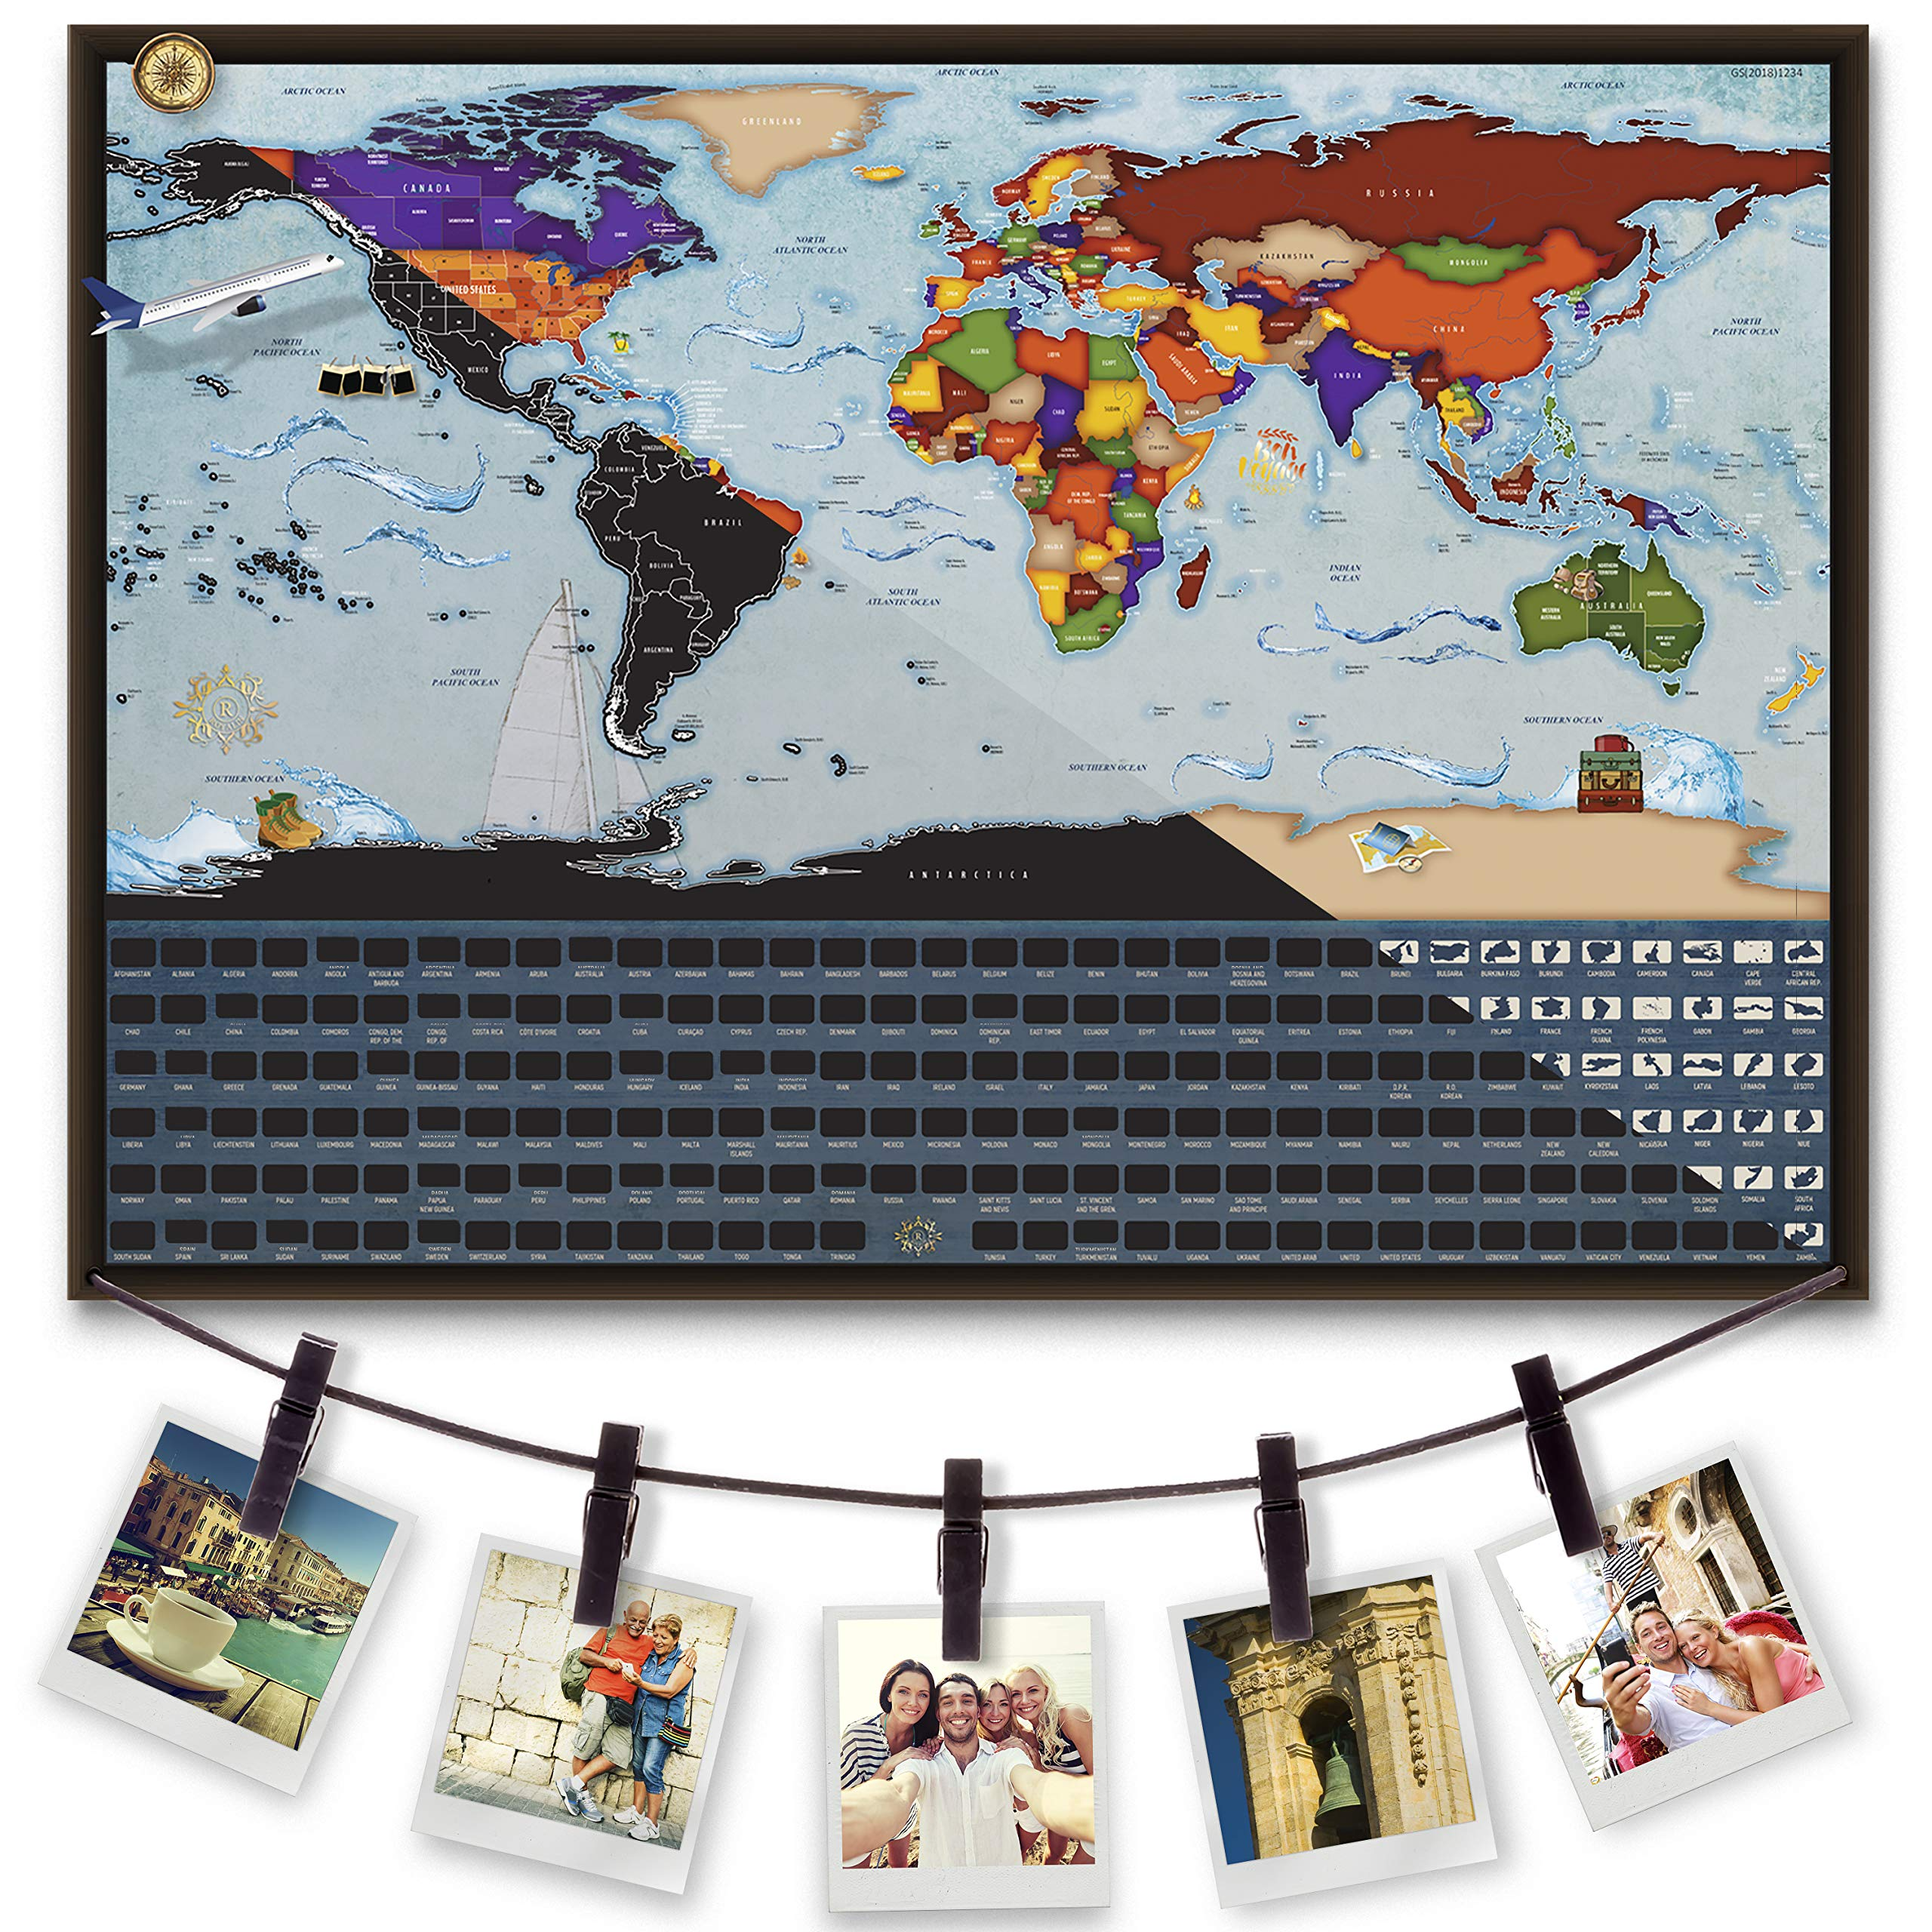 Scratch Off World Map with Hanging Rope: 17 x 24 Inch Travel Poster, Including Pins, Mounting Stickers, and Scratching Pen. by Royalin Price: $24.97